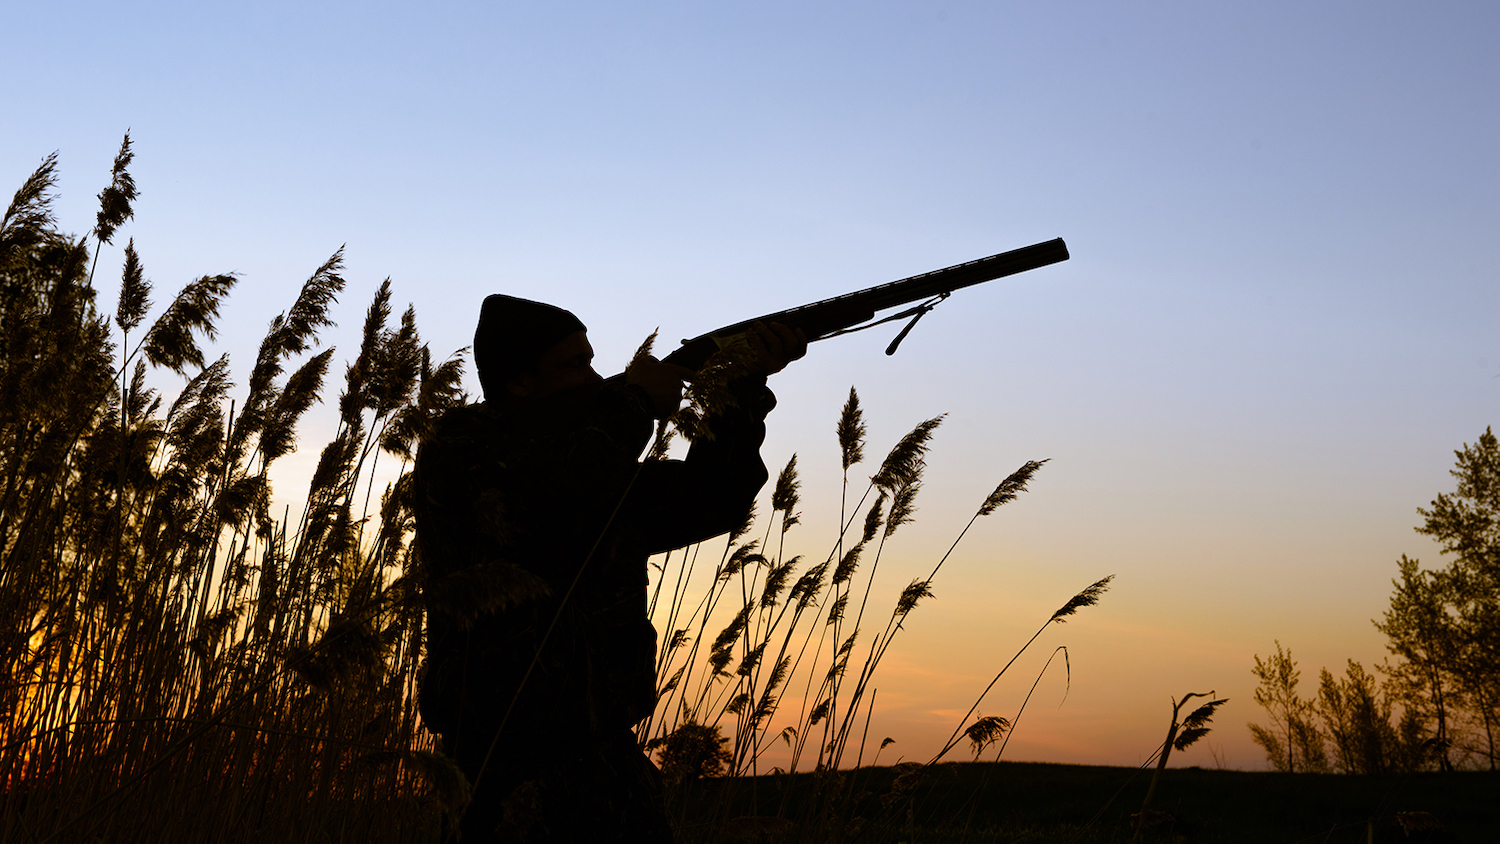 Hunter with a shotgun - Decline in Hunting Threatens Conservation Funding - Forestry and Environmental Resources NC State University